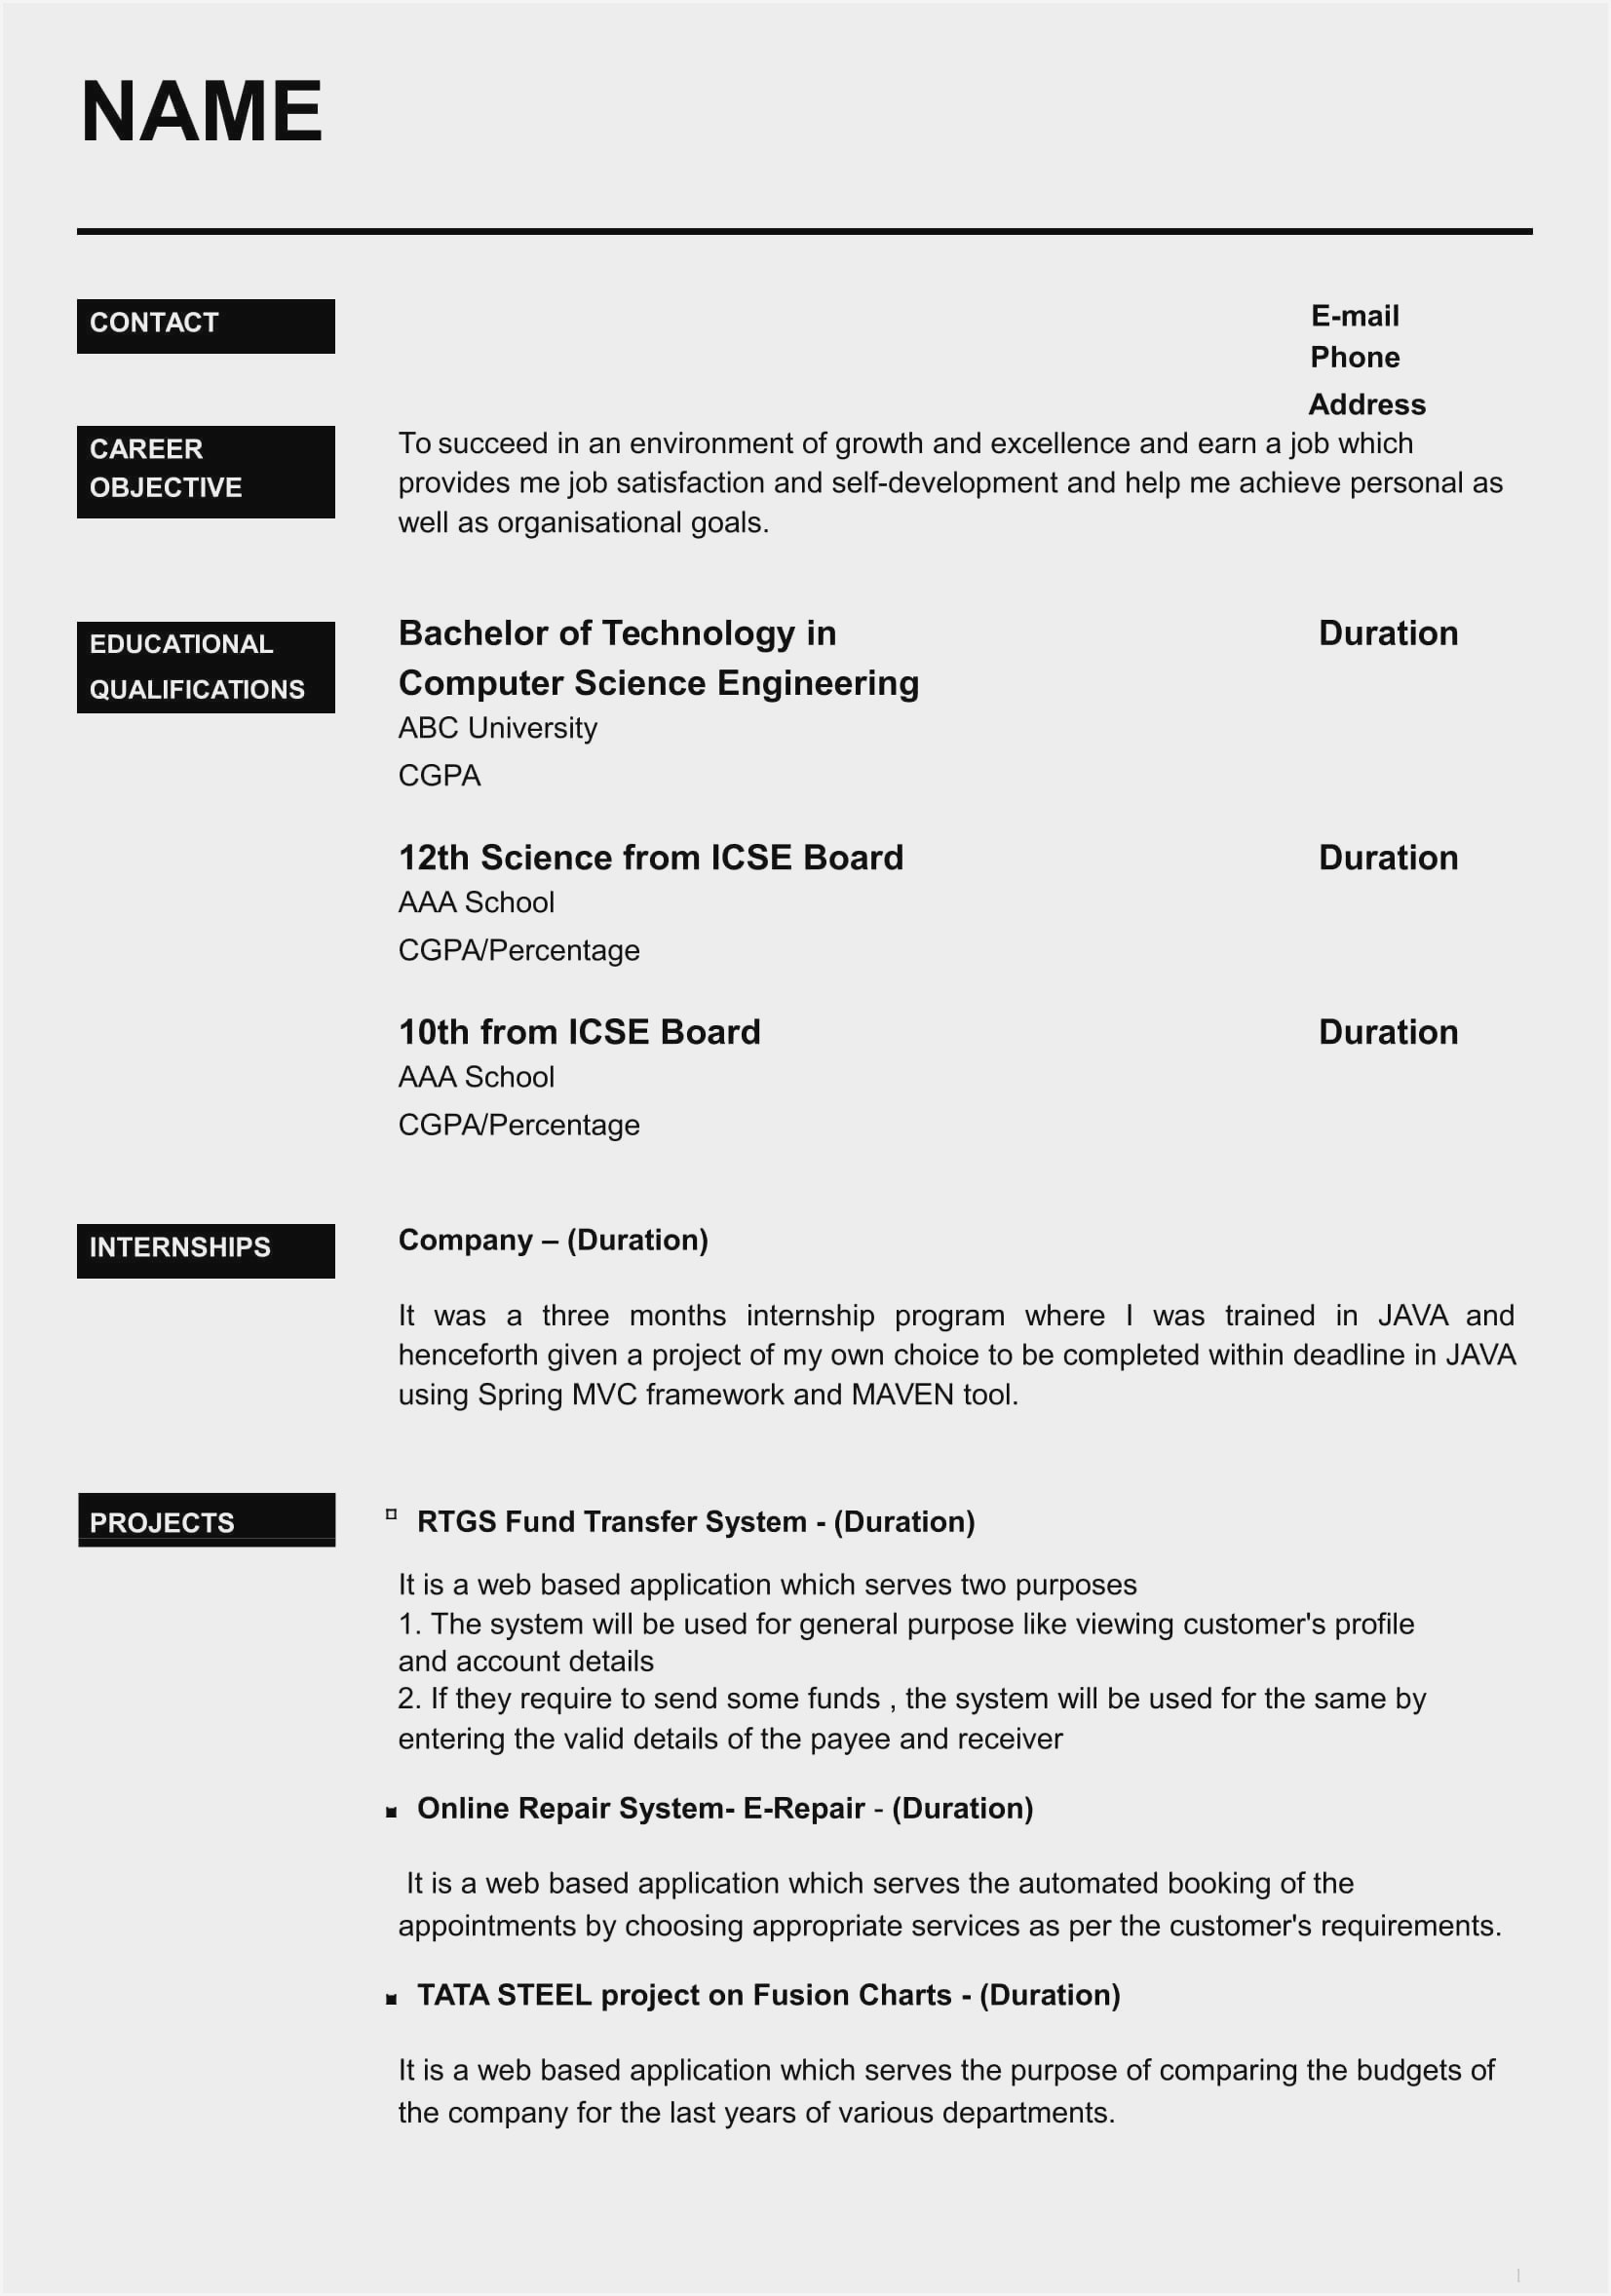 standard resume format for freshers free sample related coursework adjectives medical Resume Resume Format For Freshers